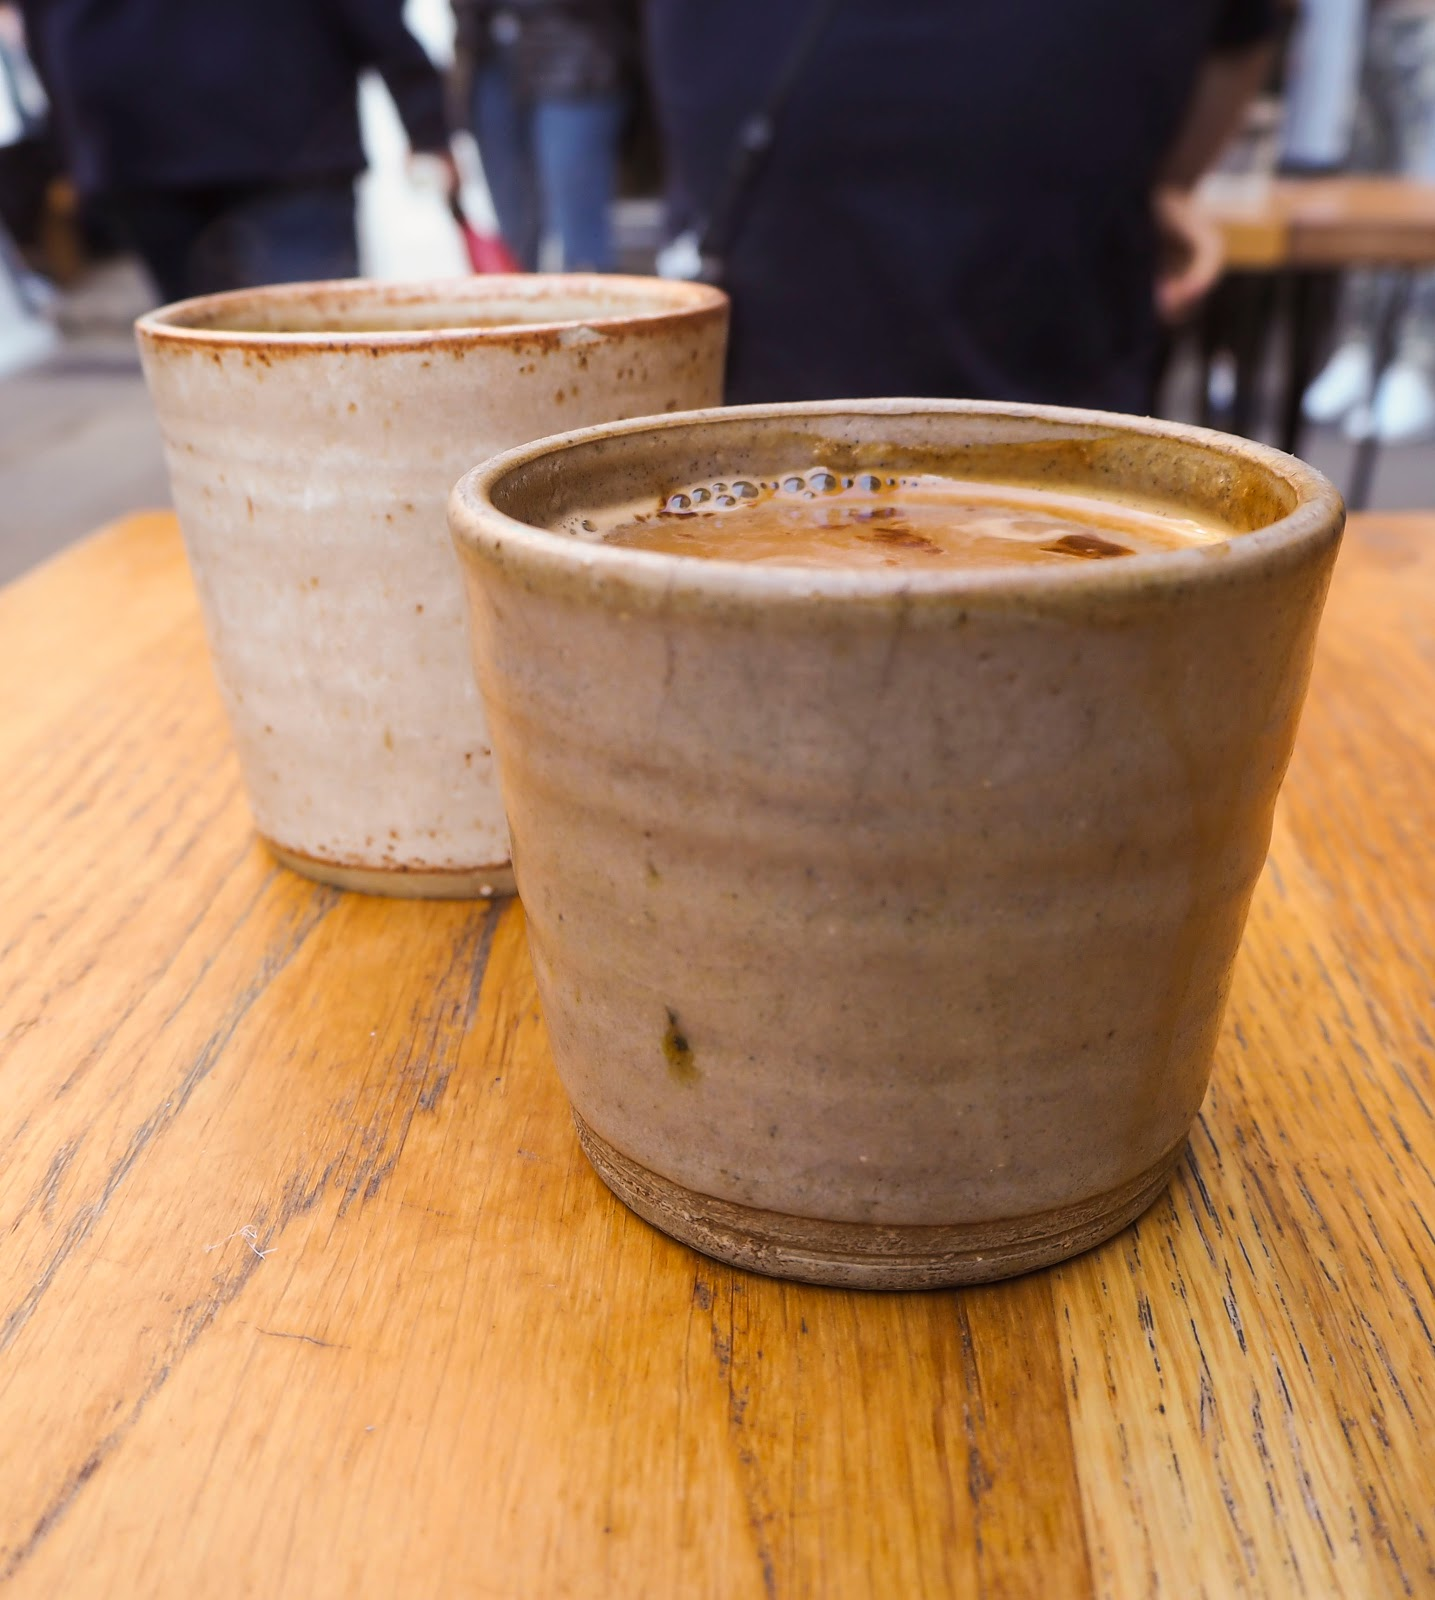 Coffee at 26 Grains, Covent Garden